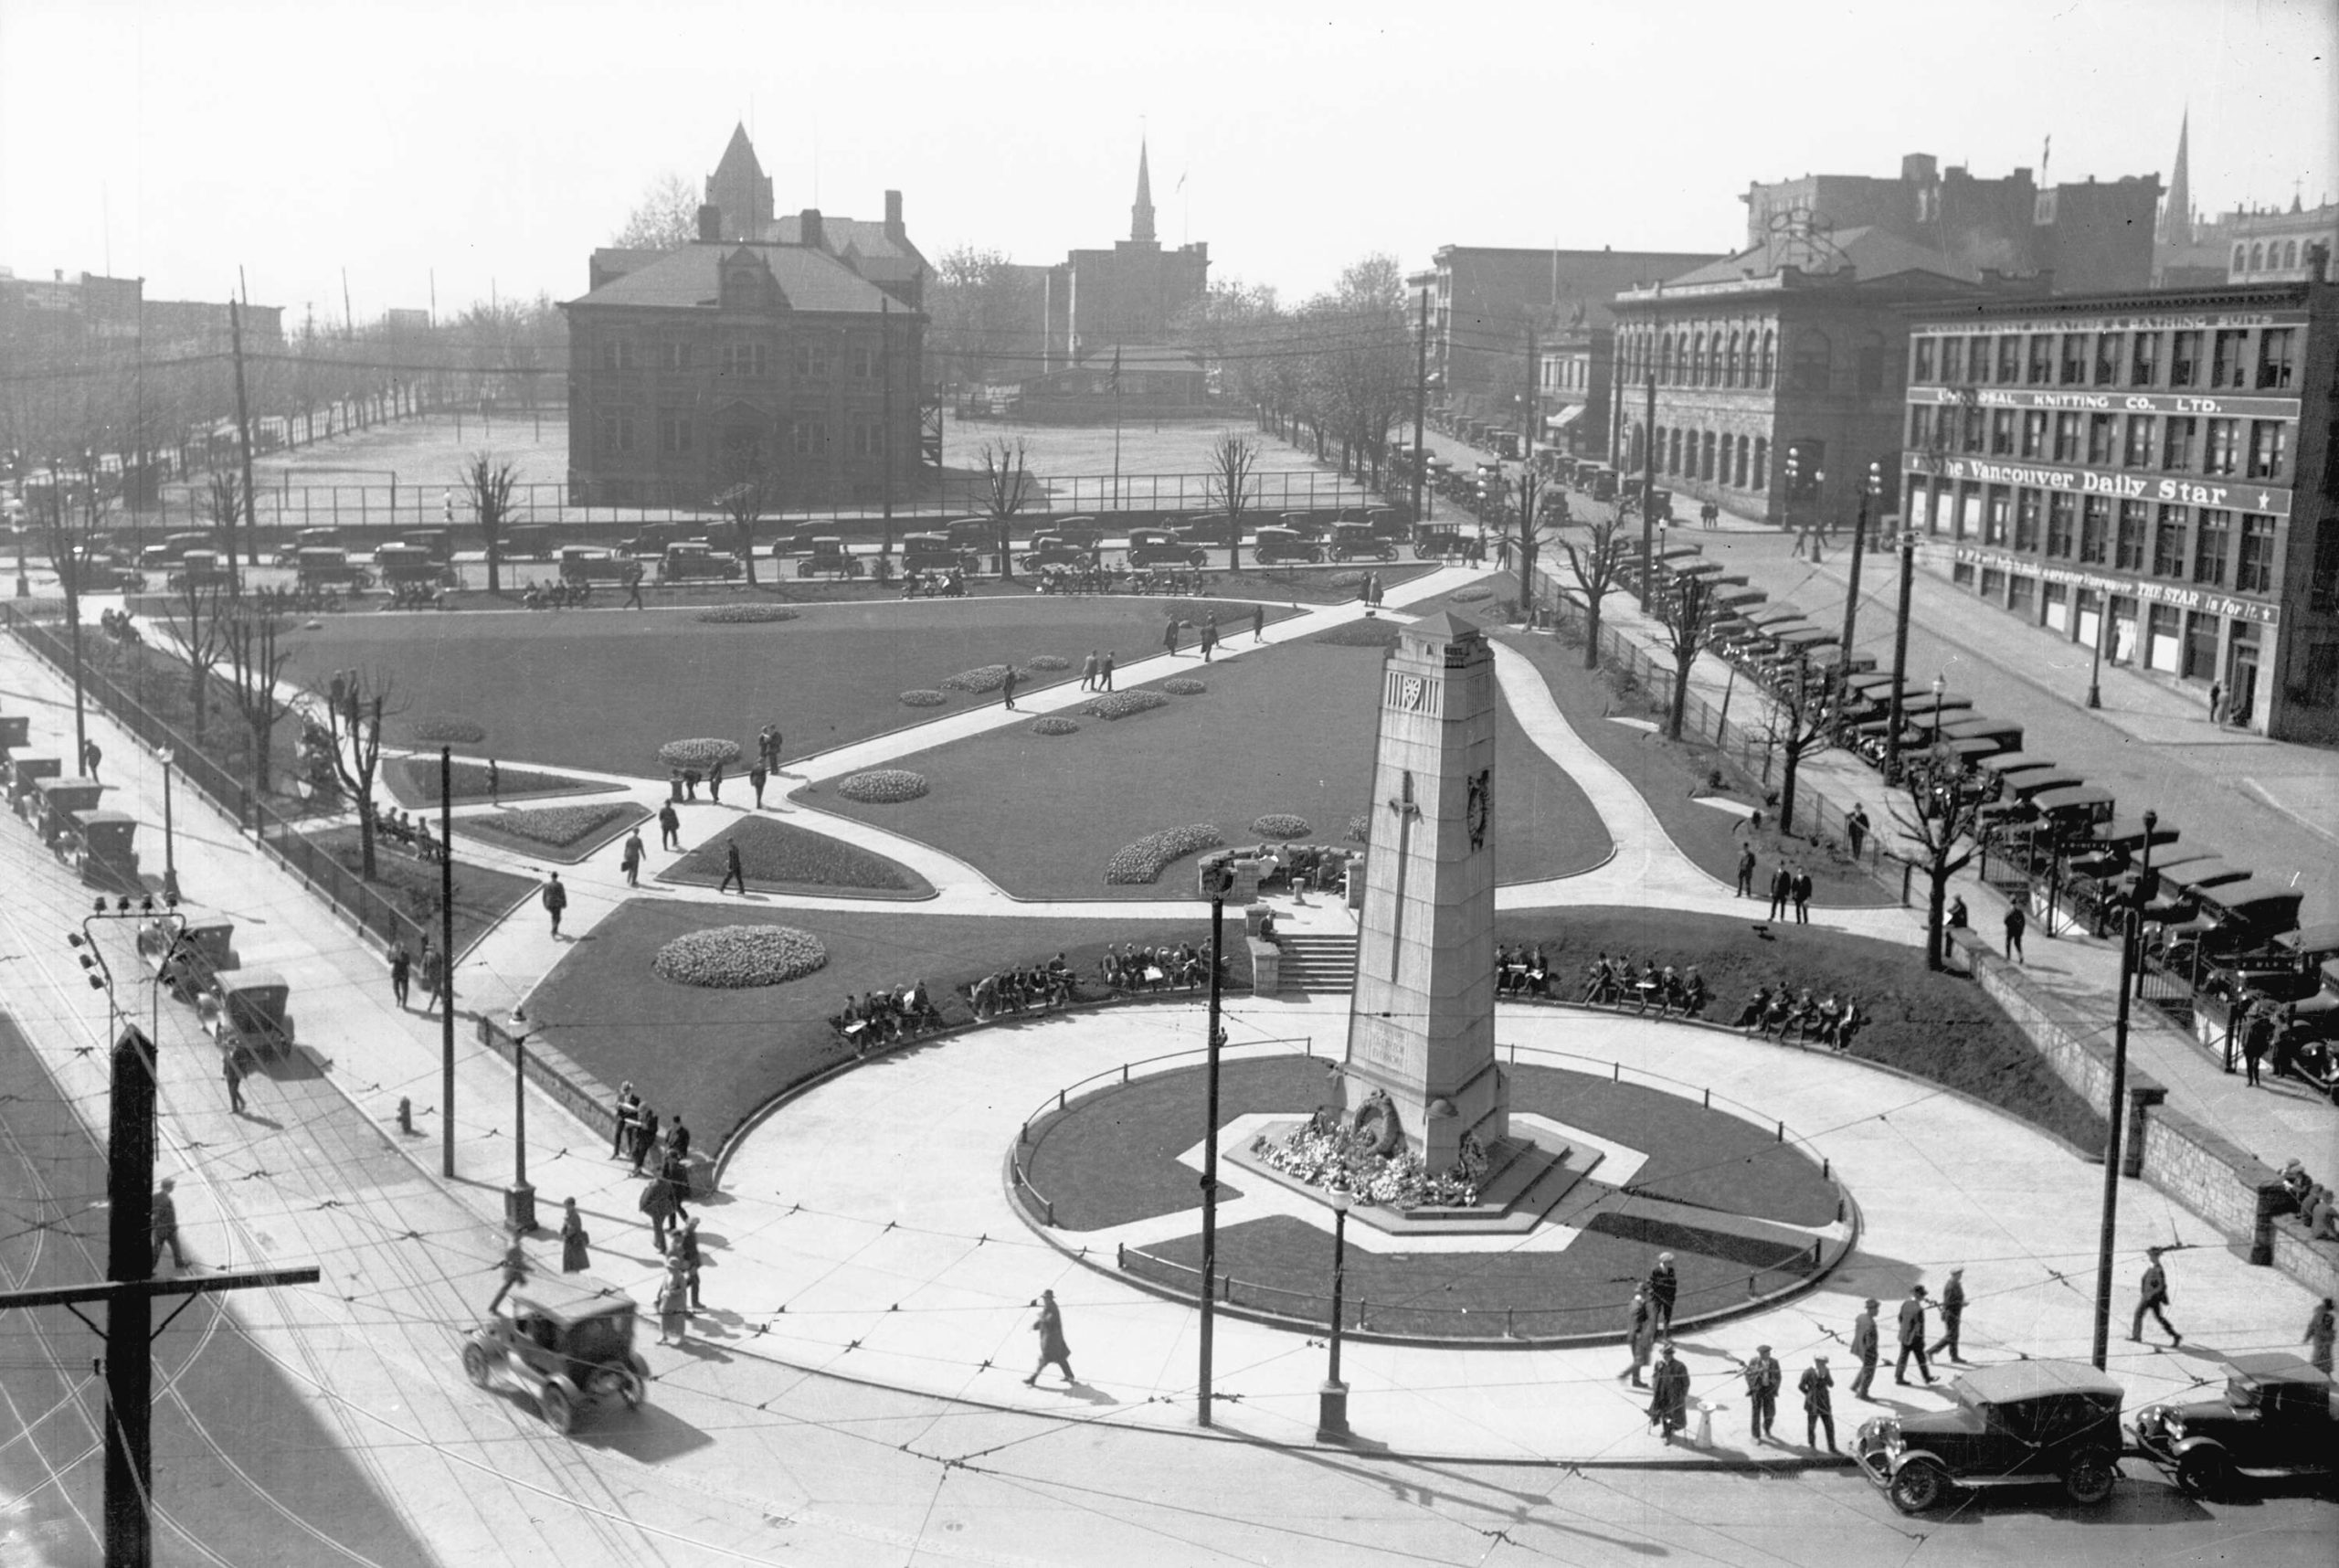 Rectangular stone memorial is the focus of a city square. Landscaping and buildings surround it.